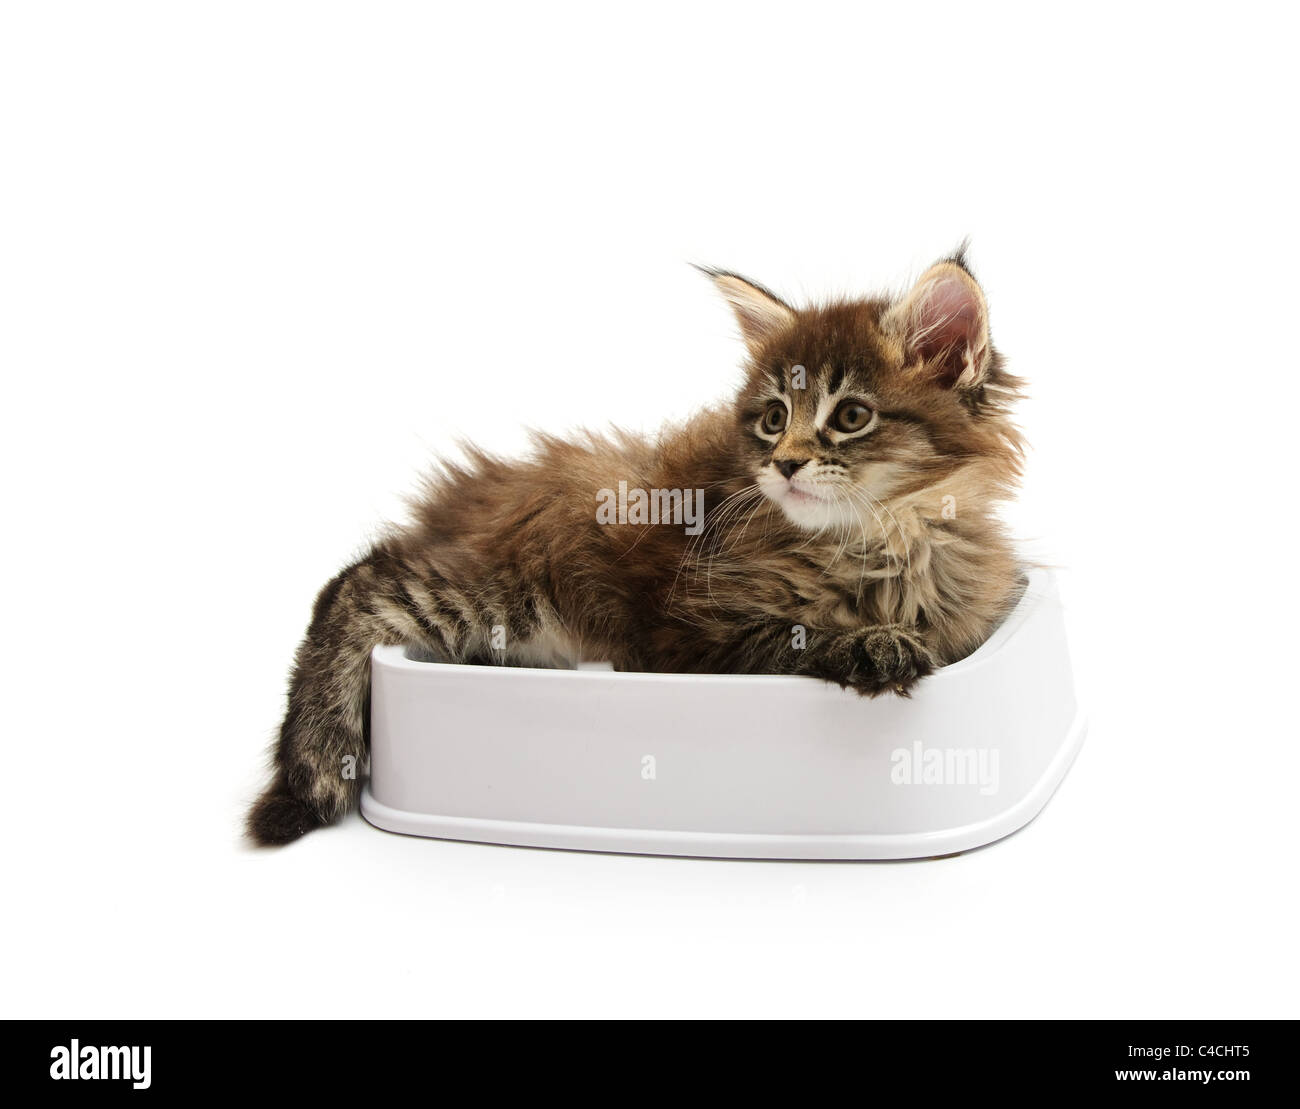 The kitten lies in a bowl against white background - Stock Image